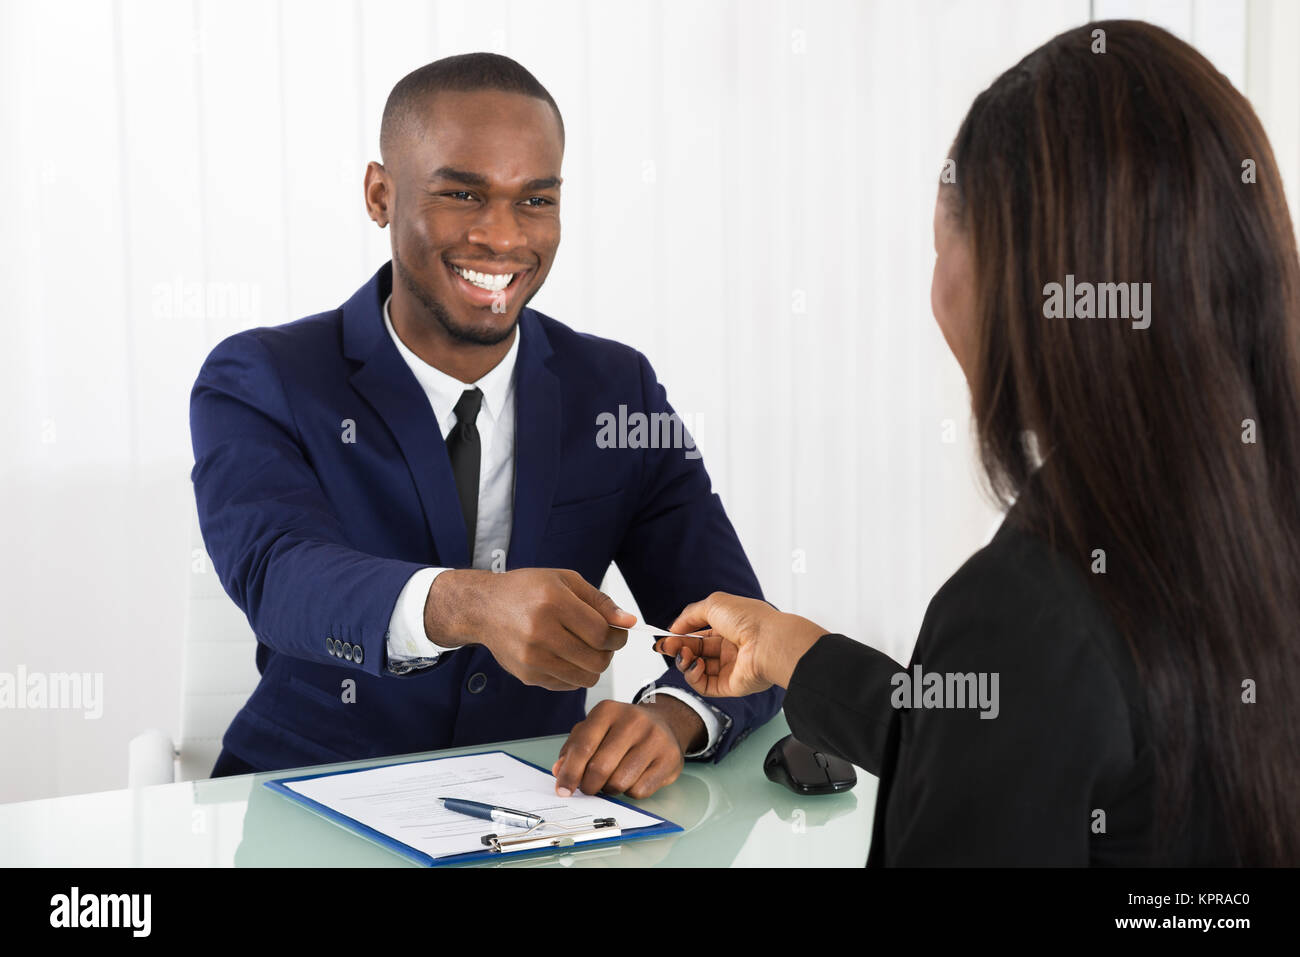 Business Executive Exchanging Business Card - Stock Image